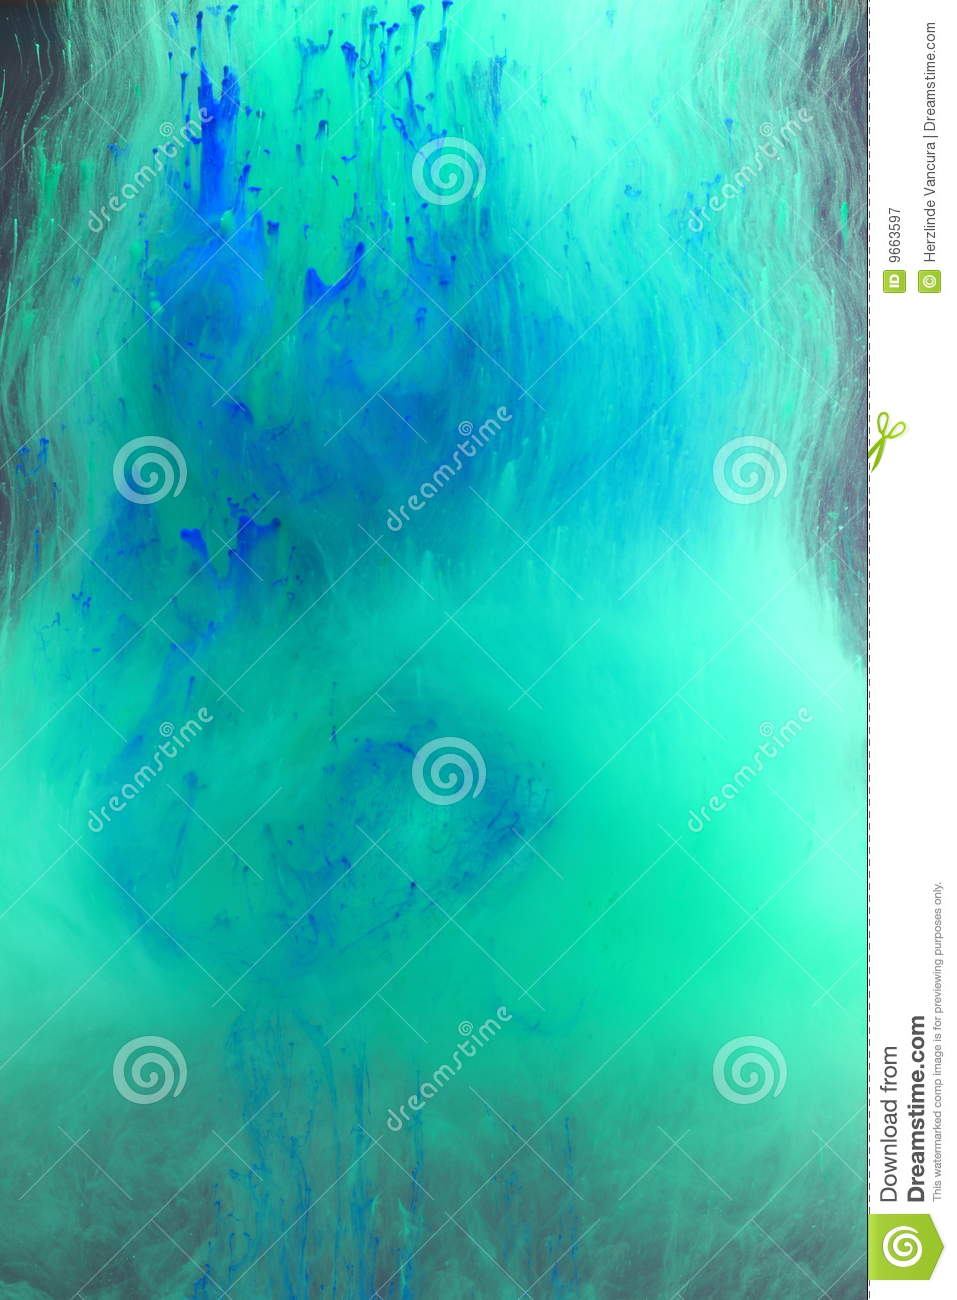 All New Hd Wallpaper Download Blue Green Watery Background Stock Image Image 9663597